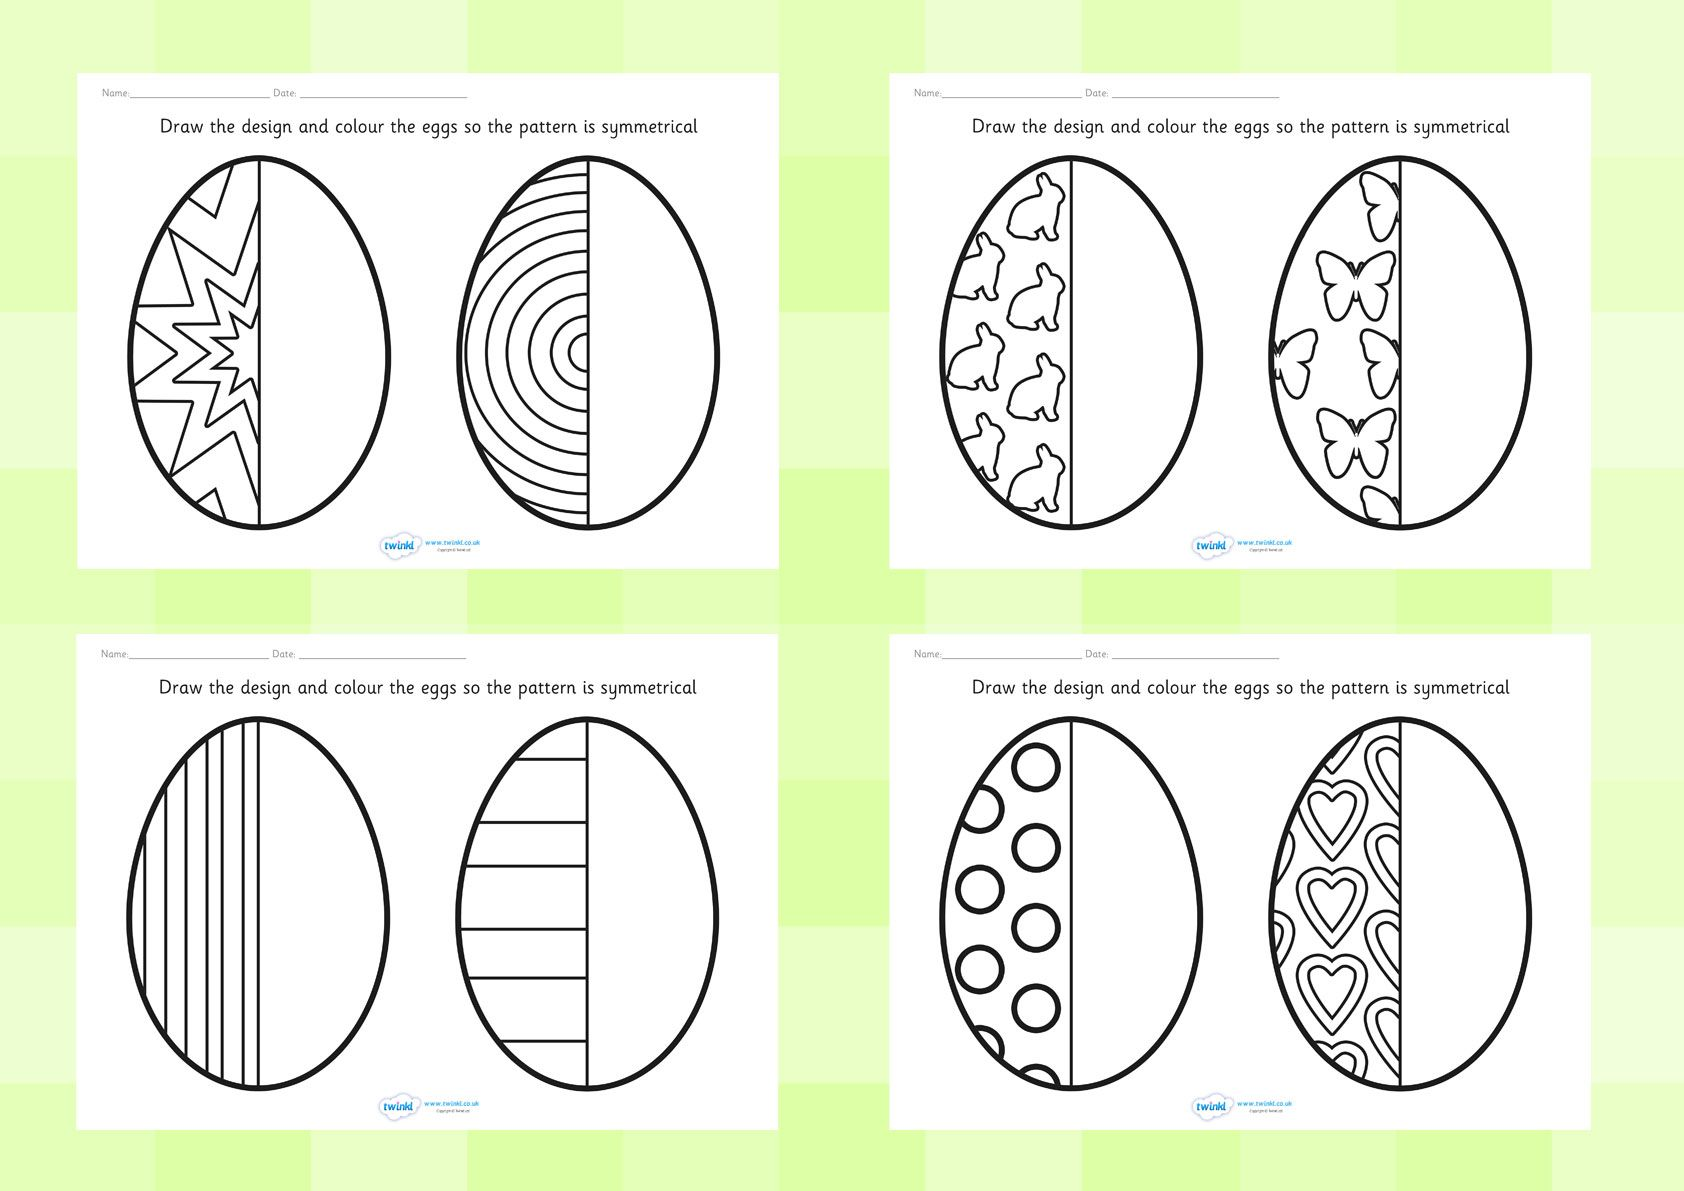 Twinkl Resources Gt Gt Easter Egg Symmetry Sheets Gt Gt Printable Resources For Primary Eyfs Ks1 And